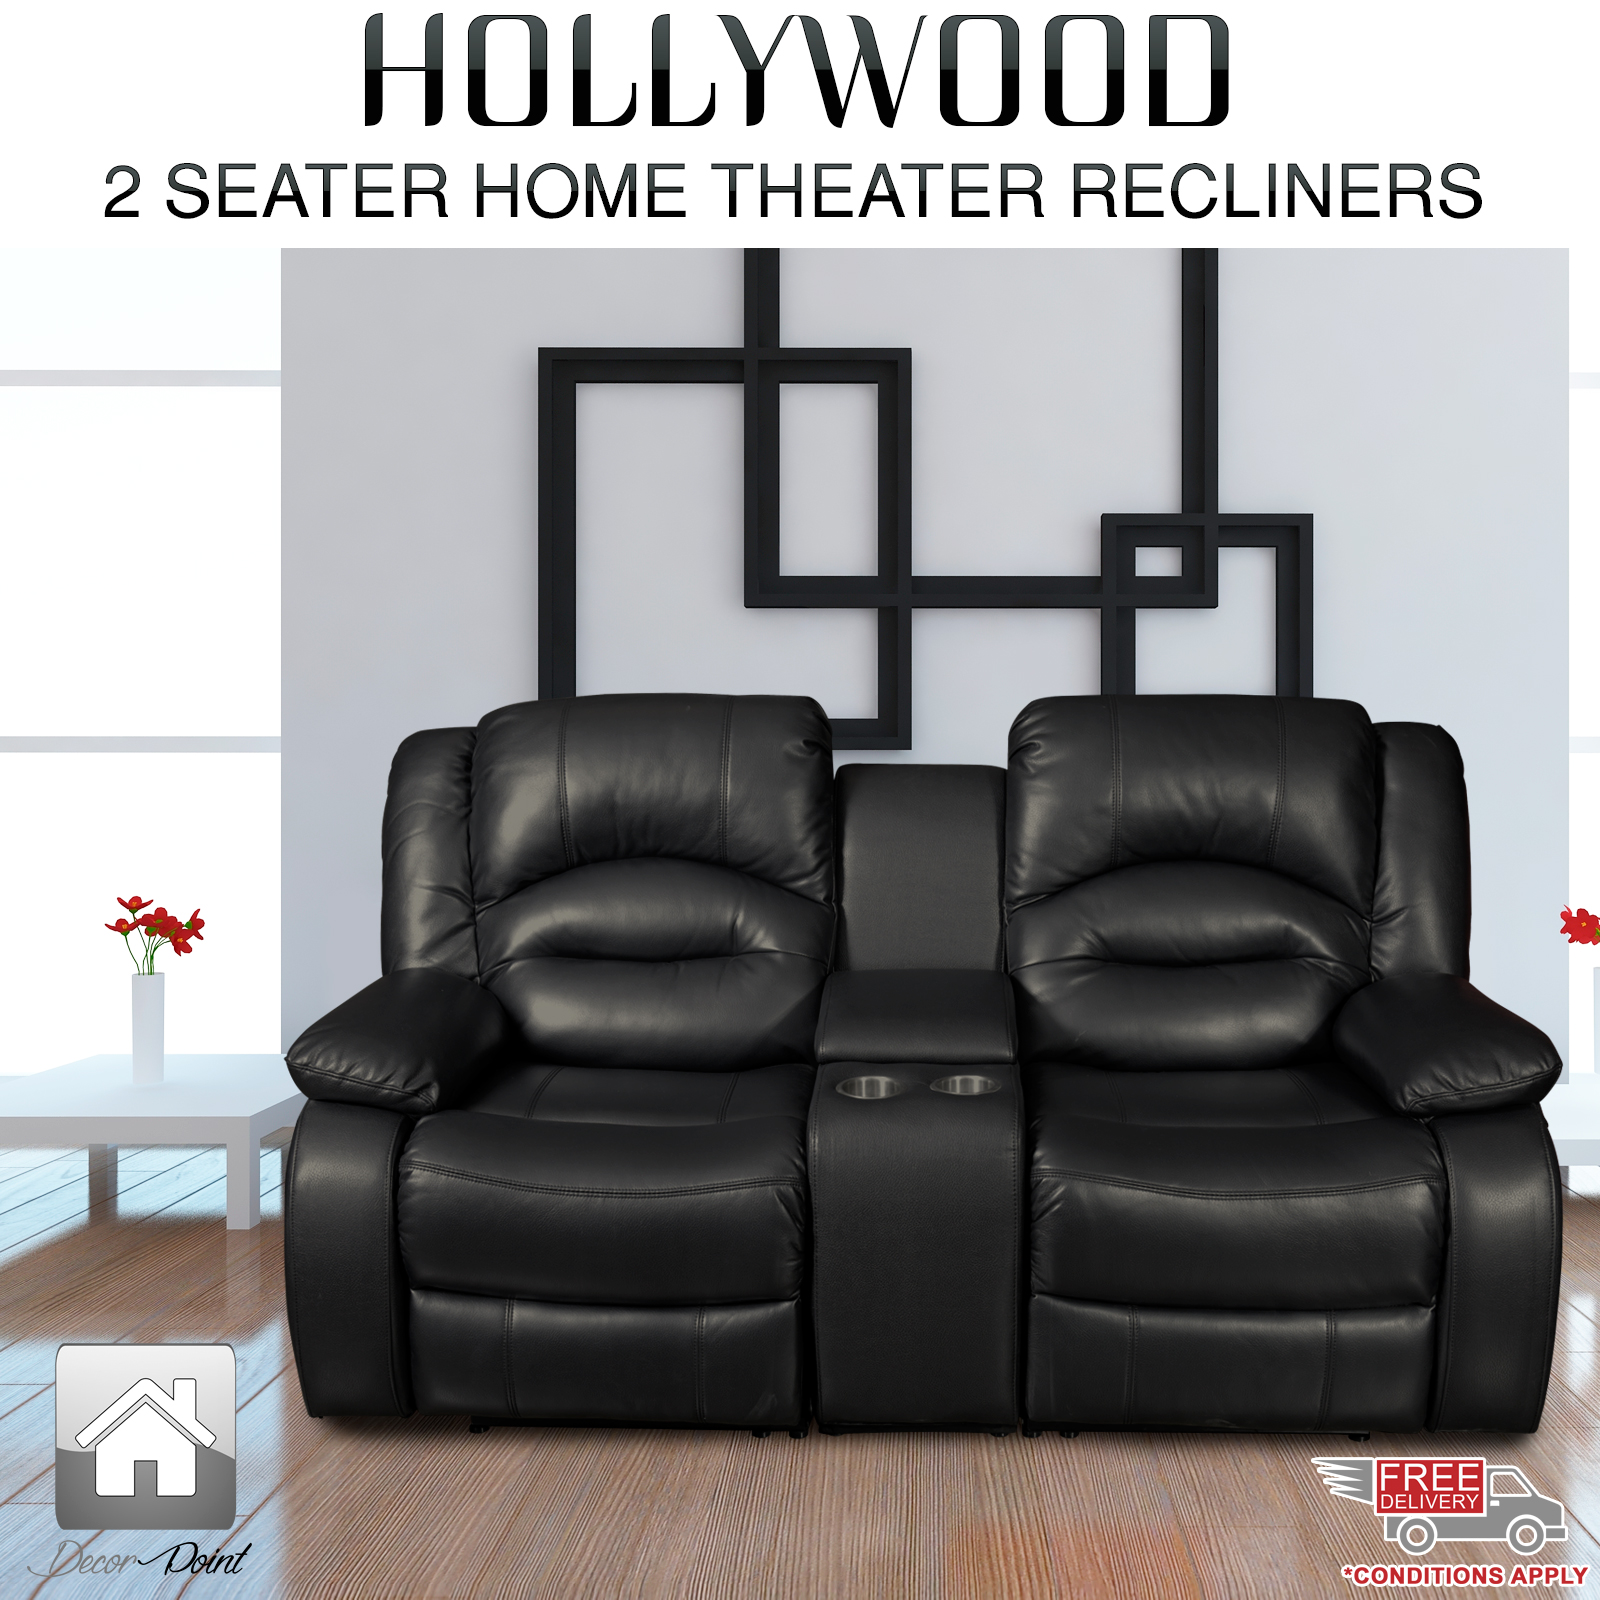 Overview. The best HOLLYWOOD HOME THEATER RECLINER ... : 2 seater theatre recliner - islam-shia.org